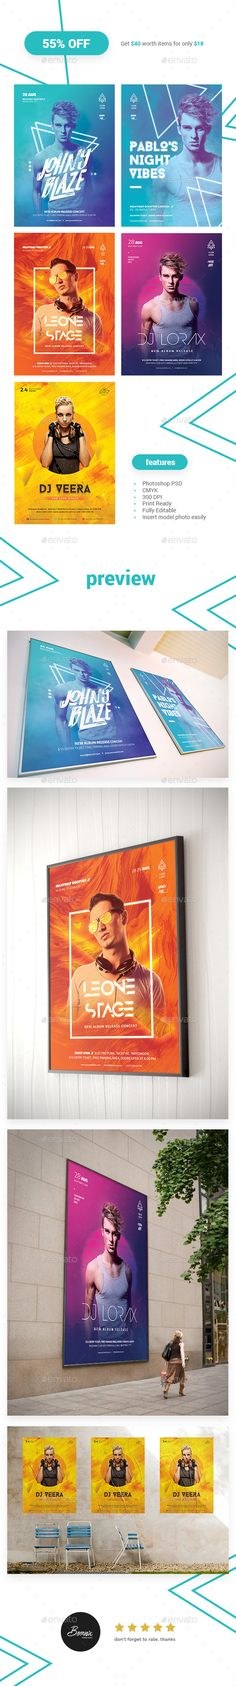 DJ Flyer Bundle — Photoshop PSD #electro #dj party • Download ➝ https://graphicriver.net/item/dj-flyer-bundle/20003223?ref=pxcr